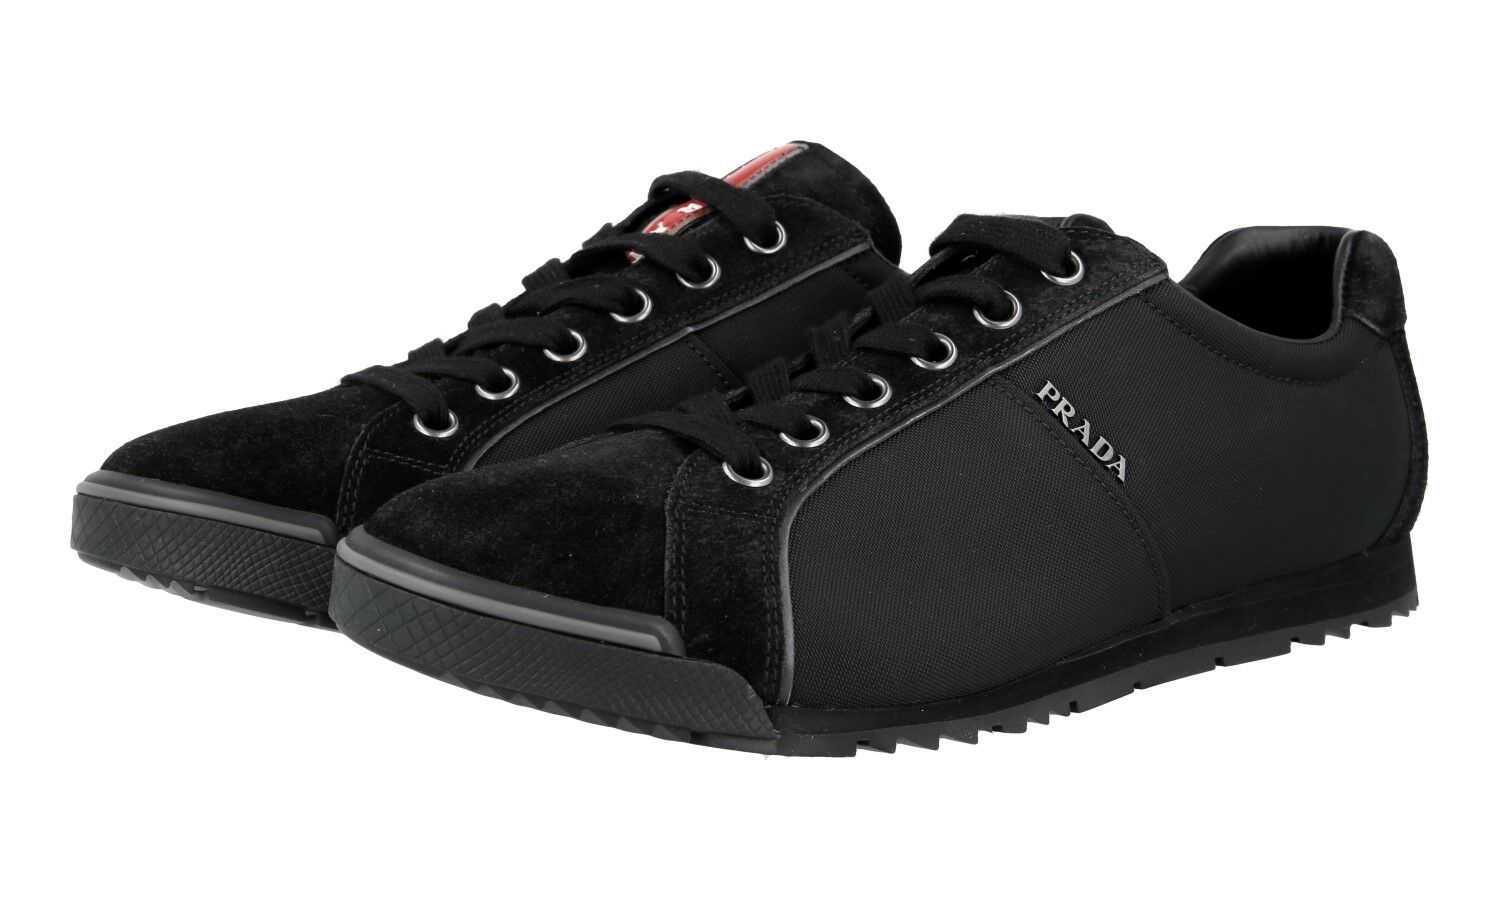 AUTHENTIC LUXURY PRADA SNEAKERS SHOES 4E2719 BLACK NEW 10,5 44,5 45